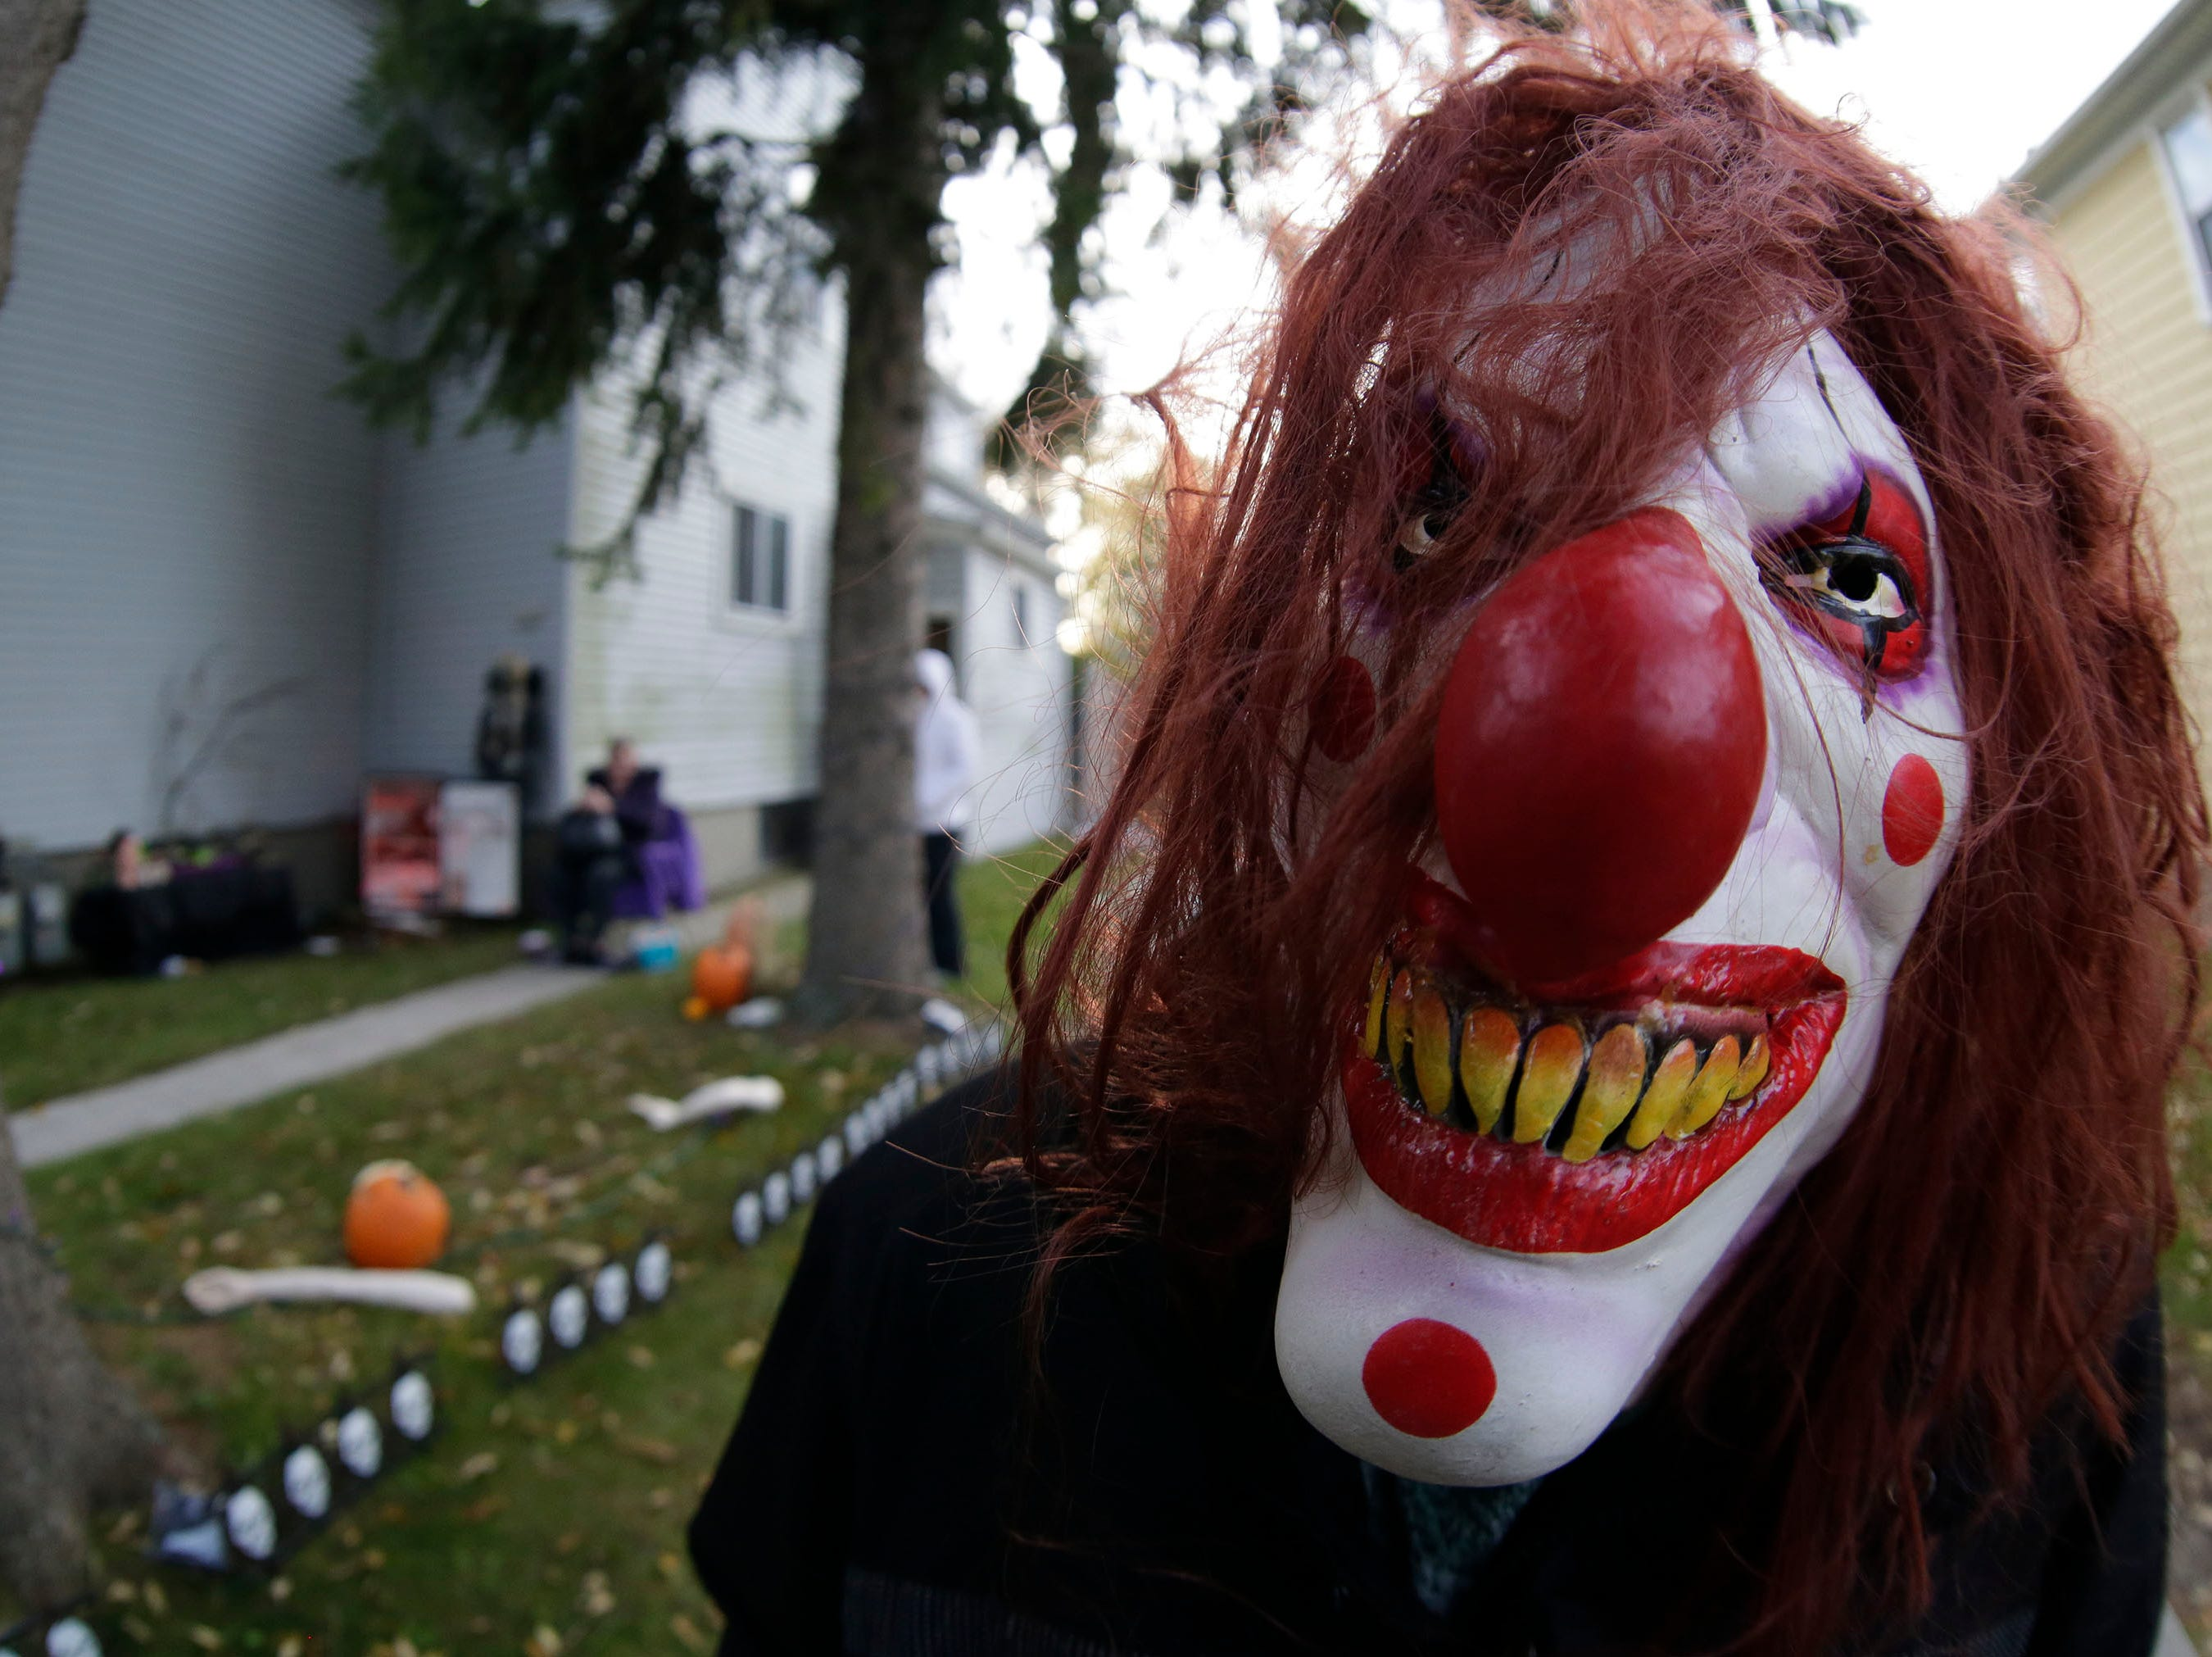 Charis Nery of Sheboygan is ready to scare youngsters of all ages during Trick or Treat, Wednesday, October 31, 2018, in Sheboygan, Wis.